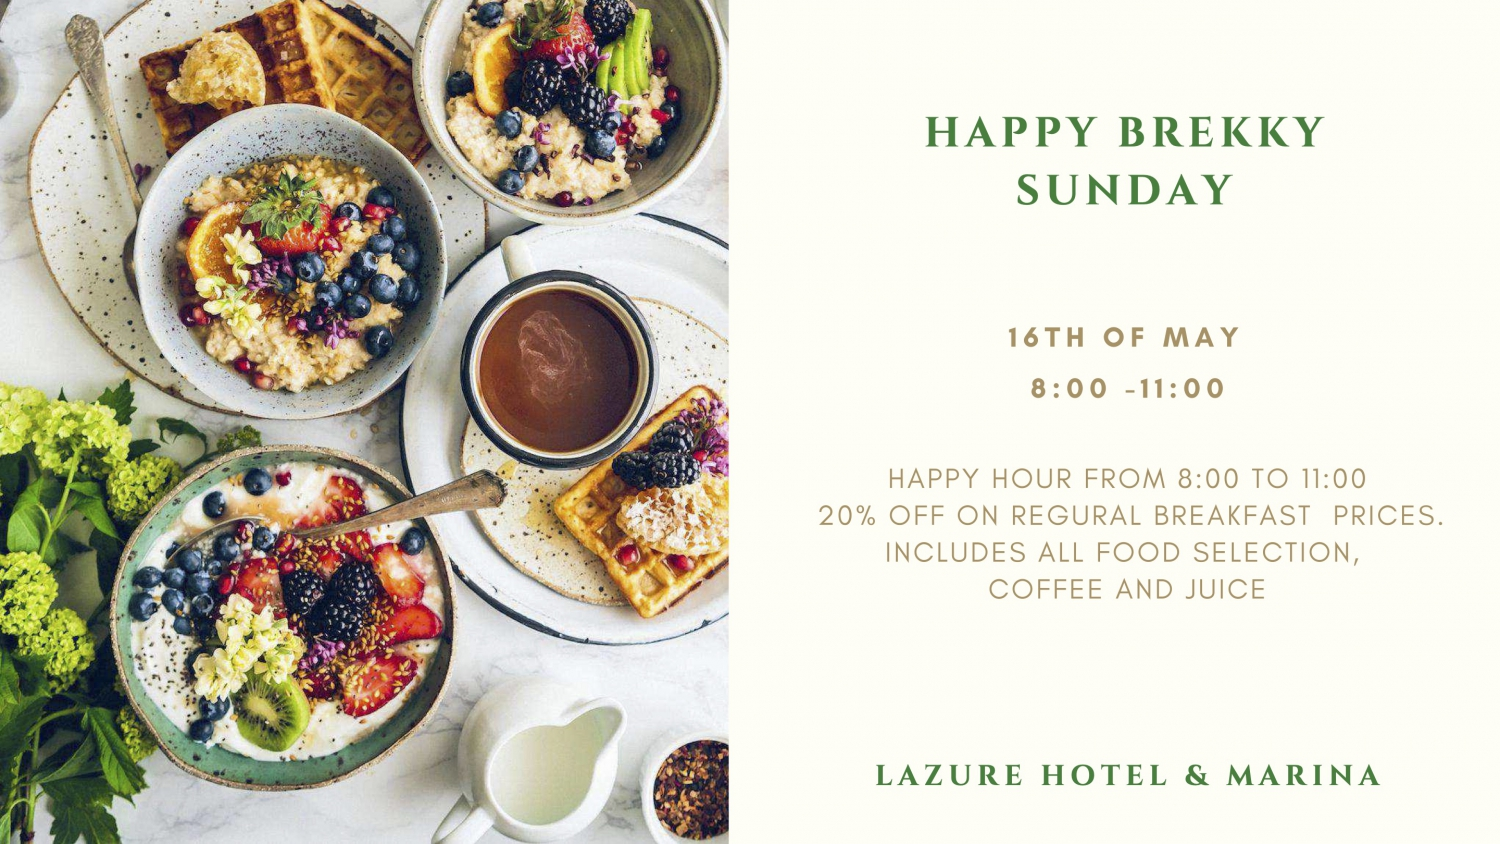 Special Offer: Happy Brekky Sunday at Lazure Hotel